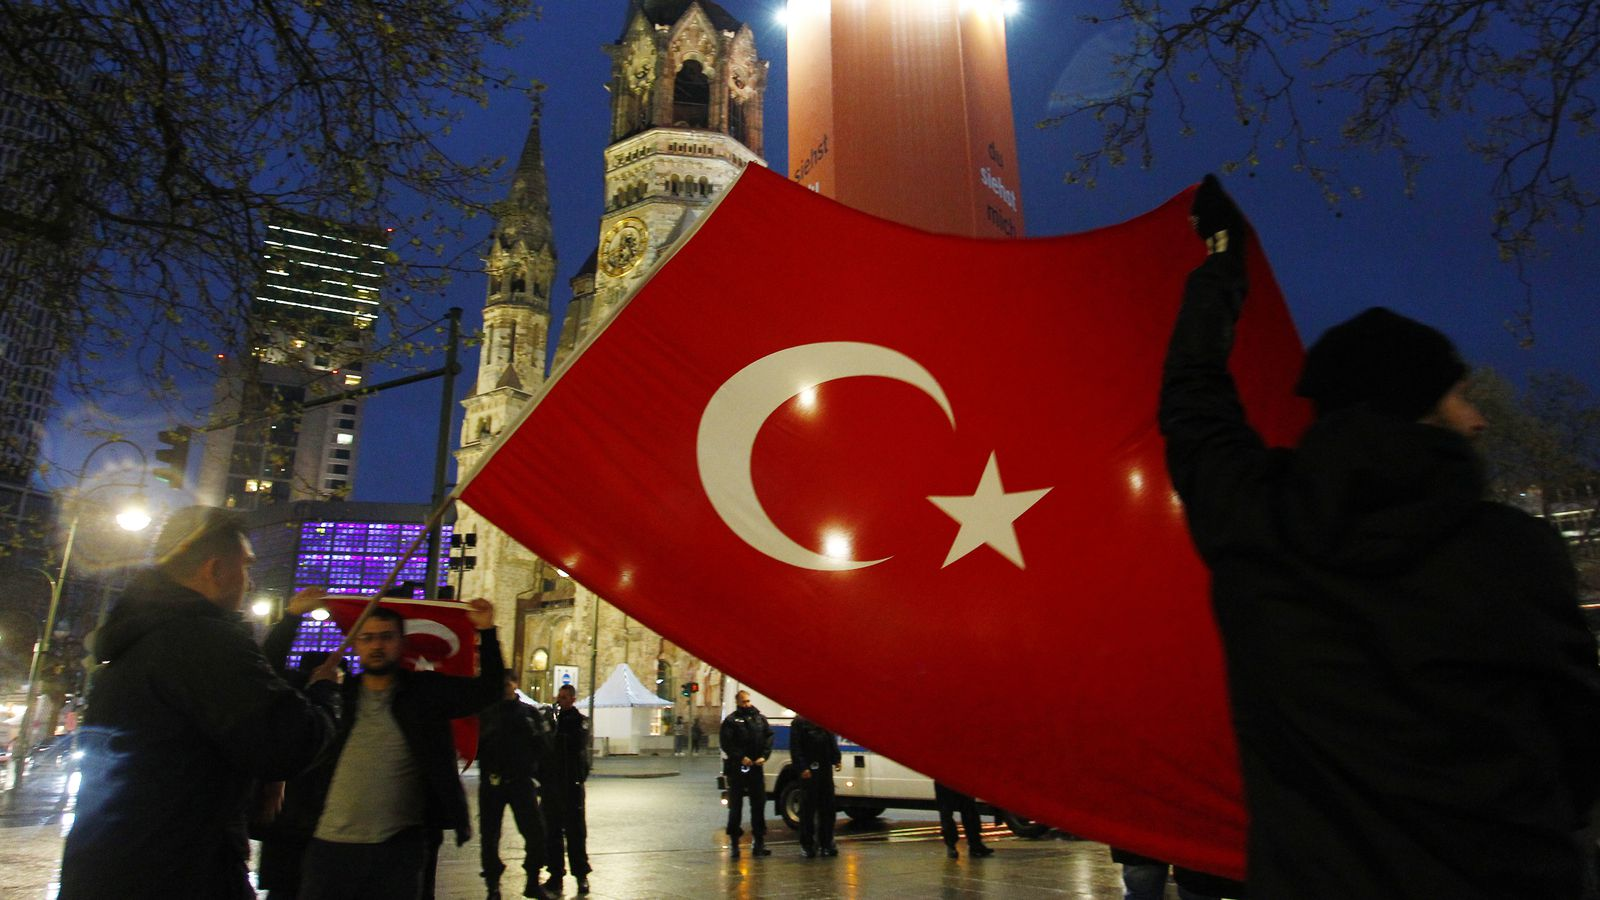 Turkey blocked access to Wikipedia after it refused to remove content